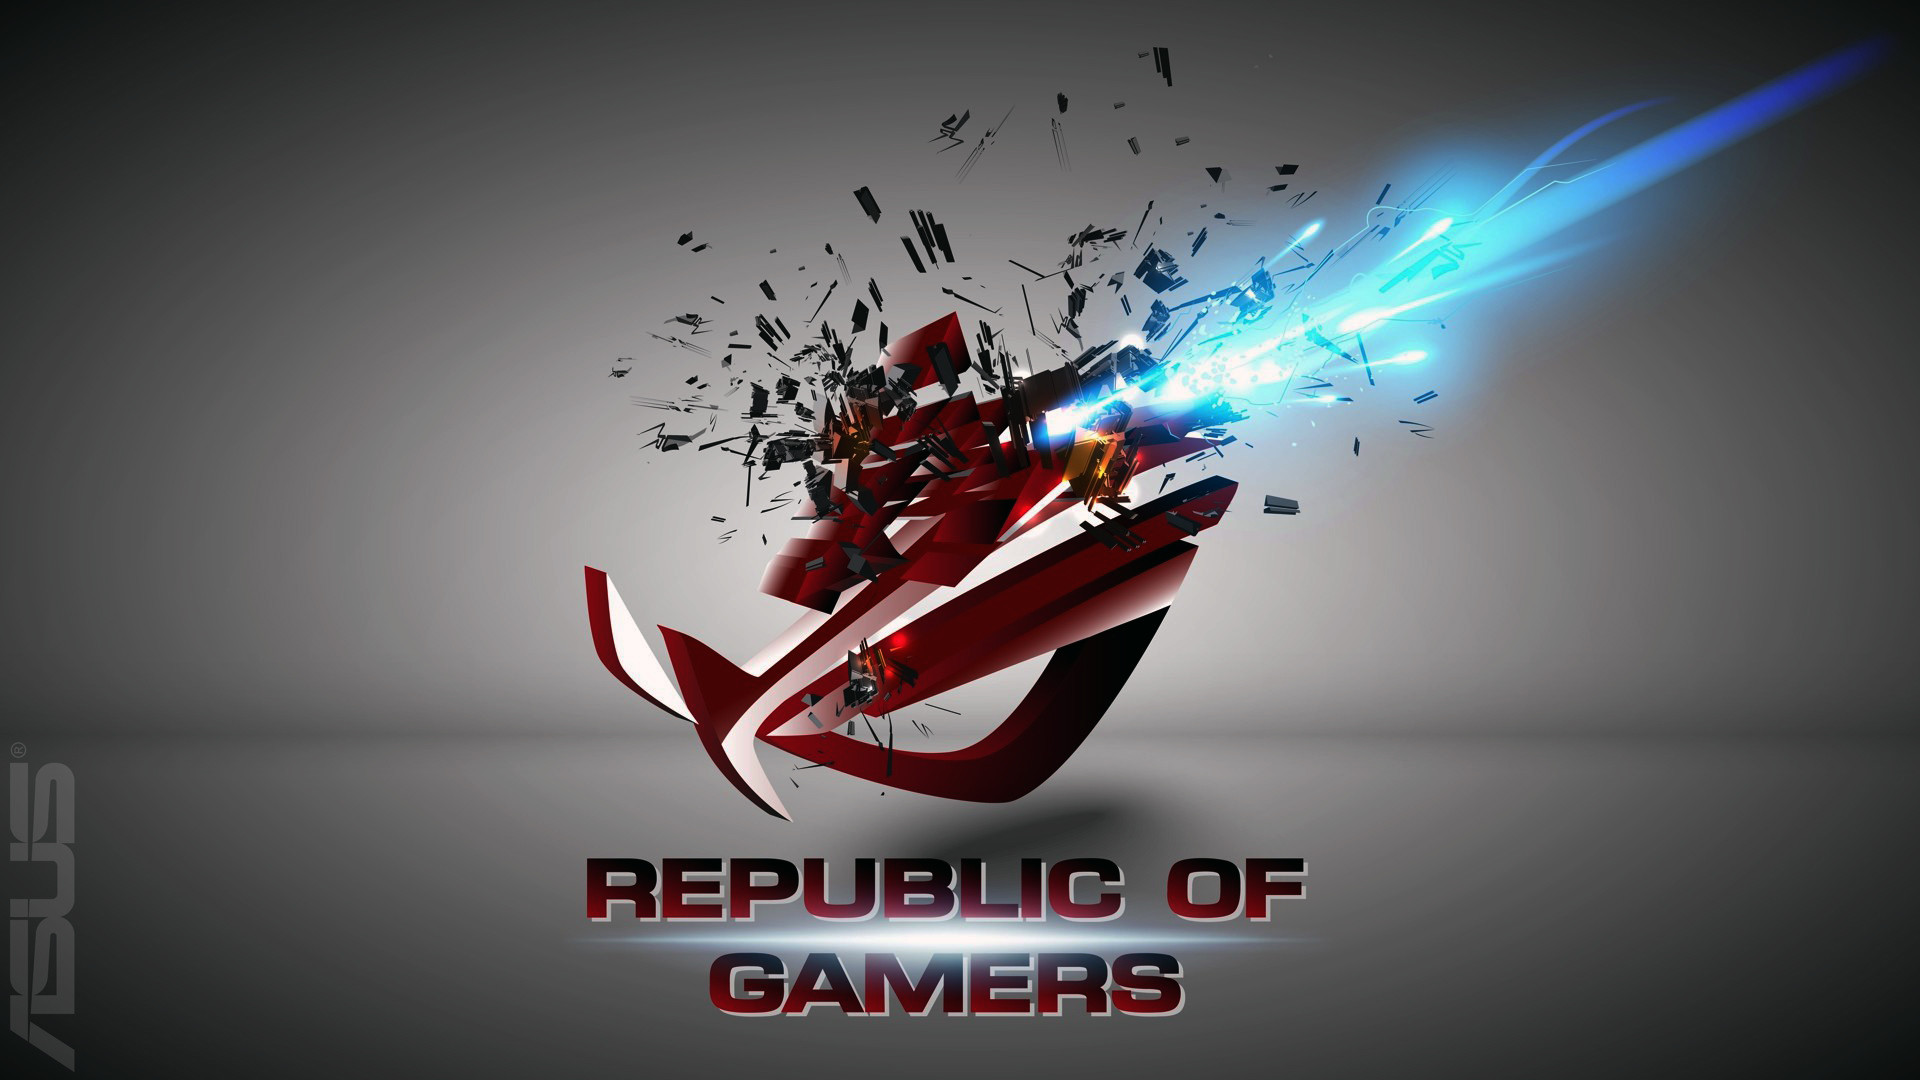 asus rog (republic of gamers) logo shattered explosion hd. .